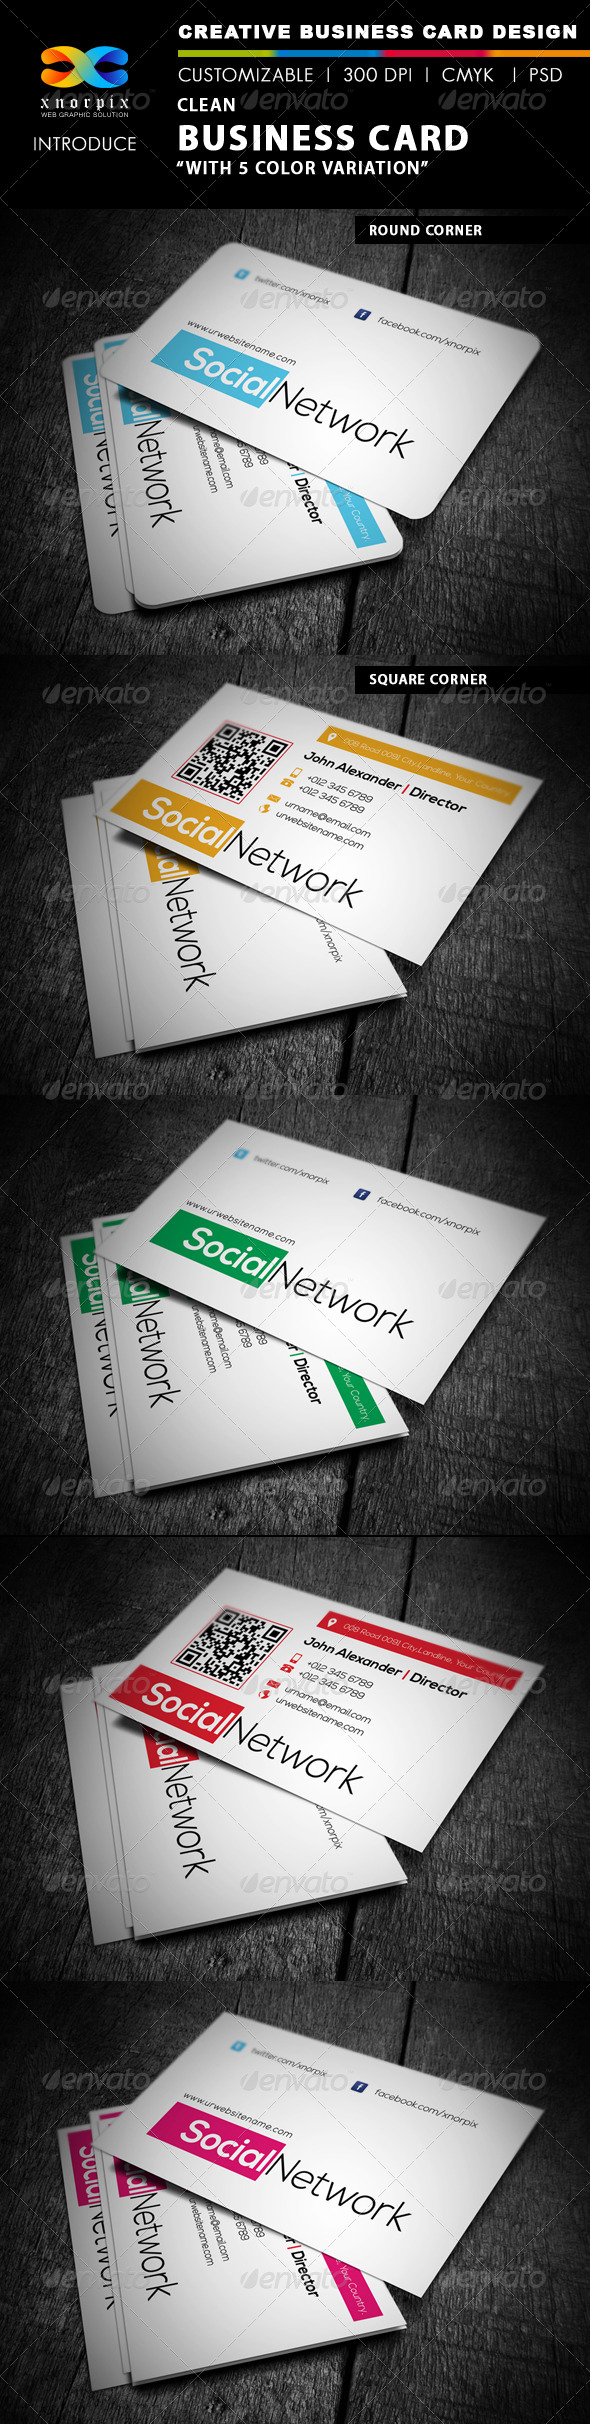 GraphicRiver Clean Business Card 4445456